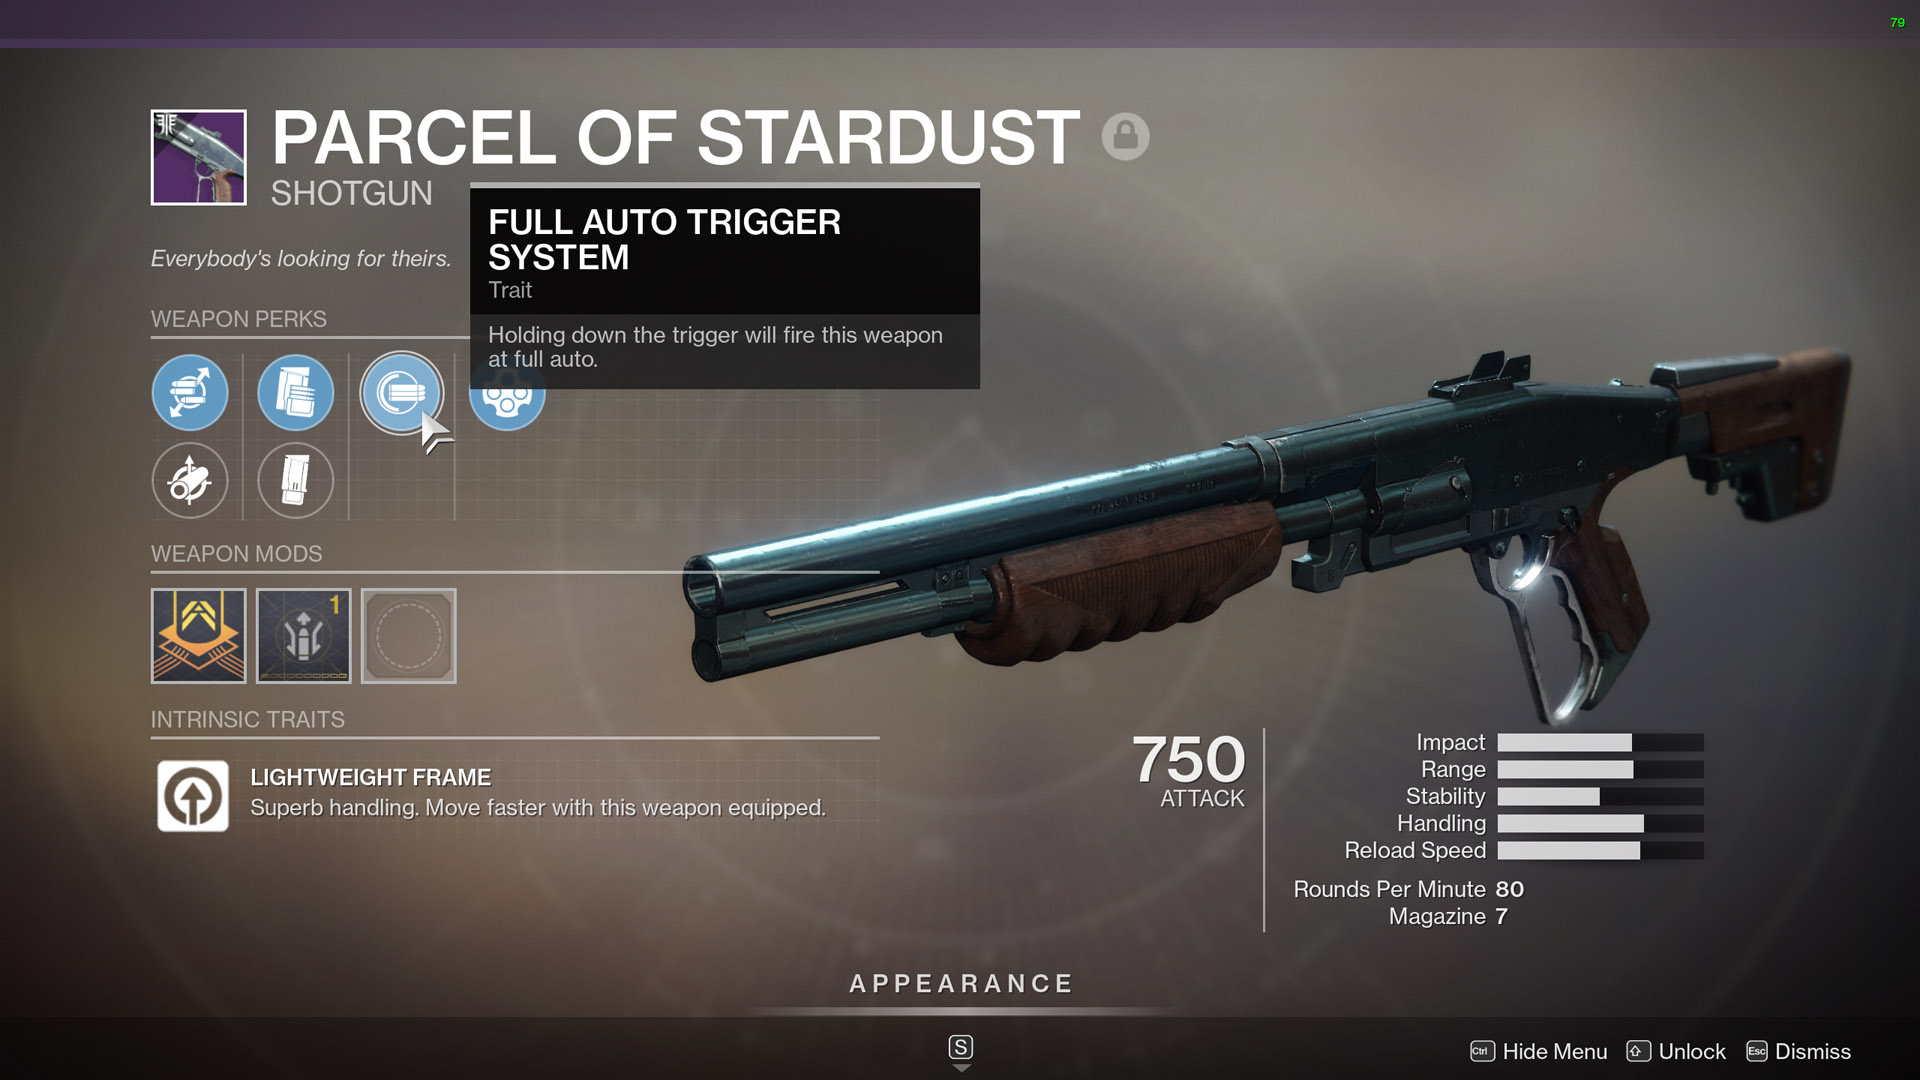 destiny 2 best shotguns Parcel of Stardust